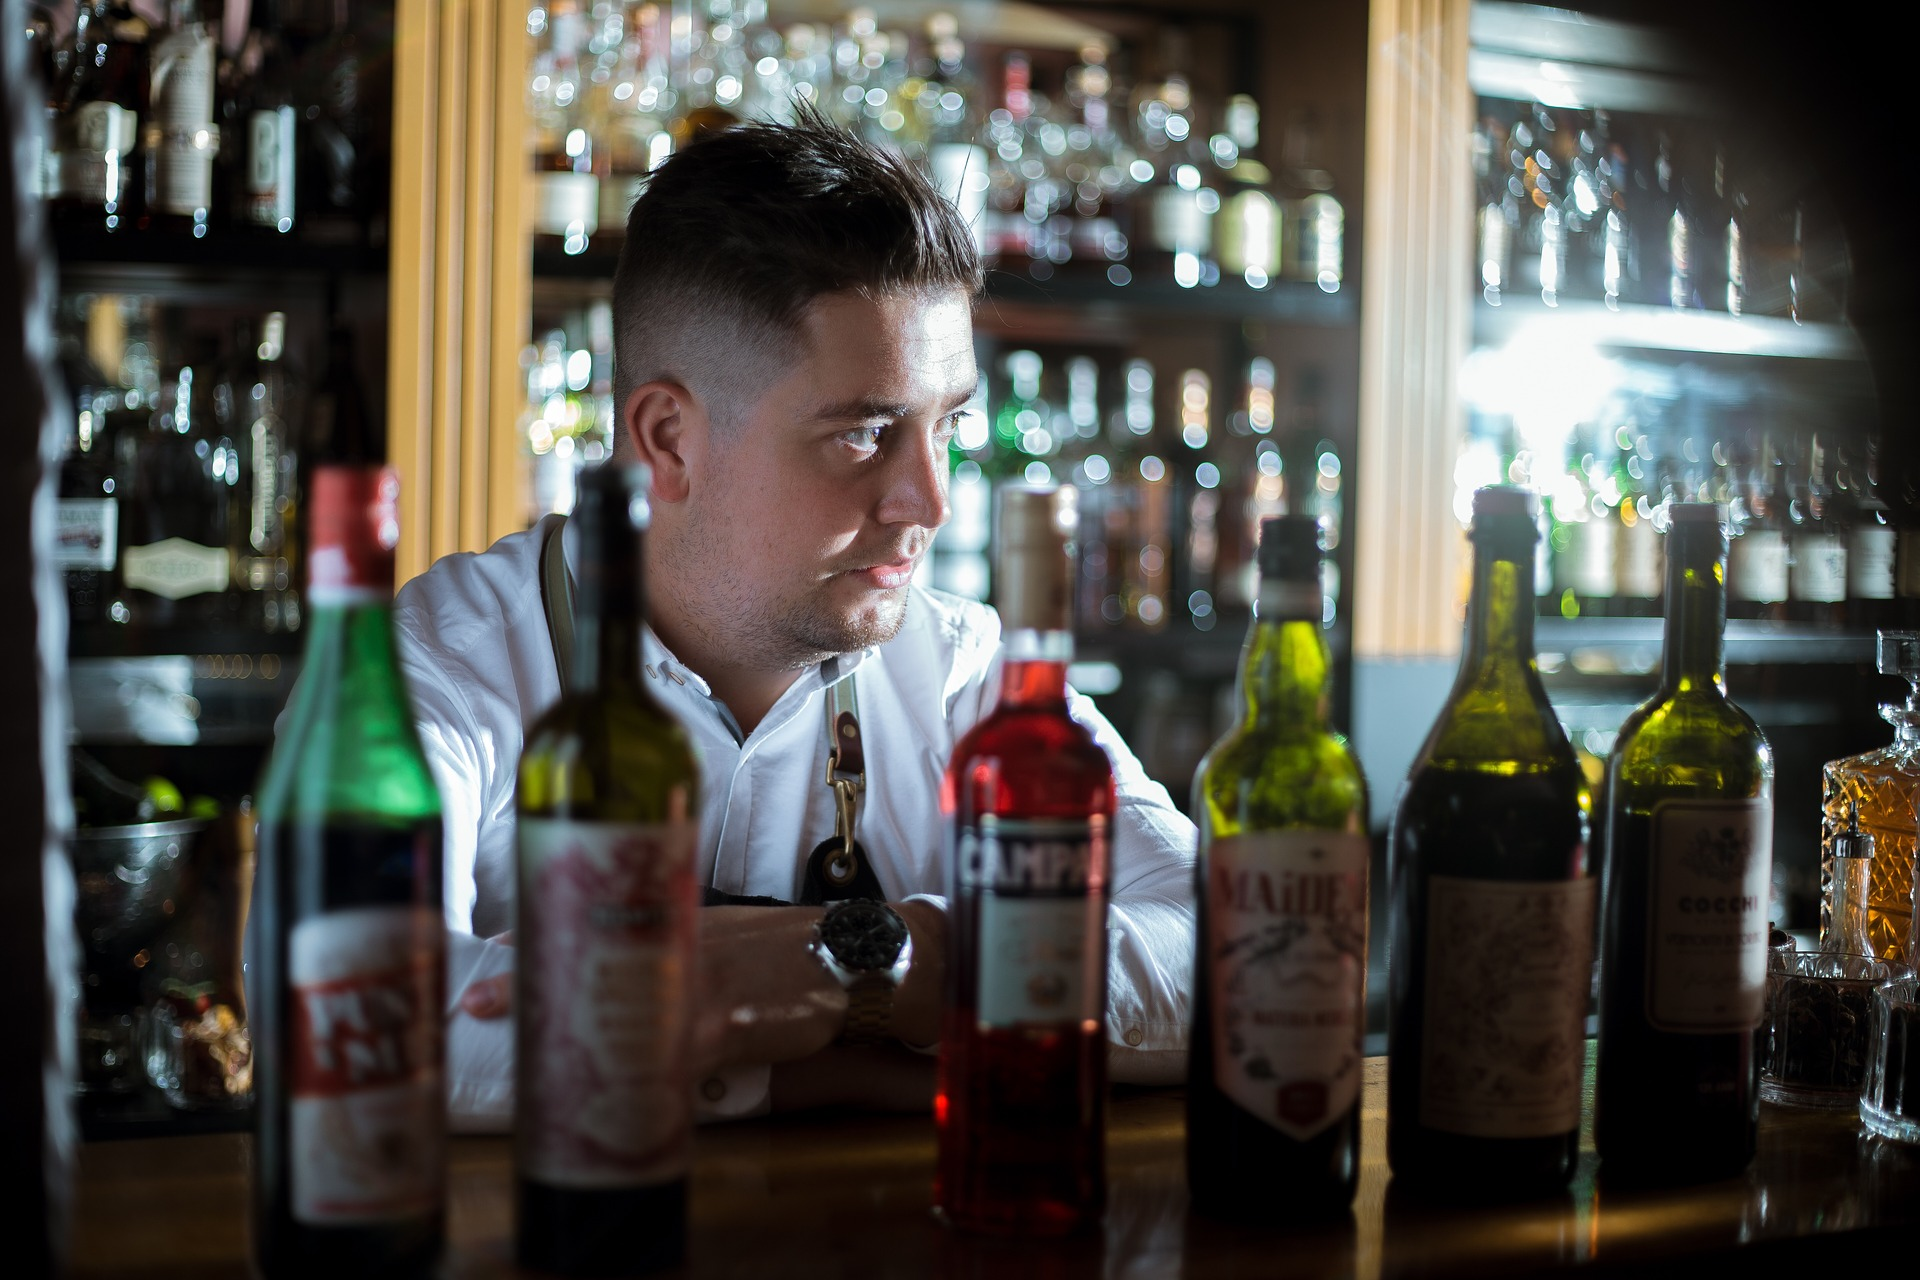 Impress your bartender and friends by knowing the language of mixed drinks.